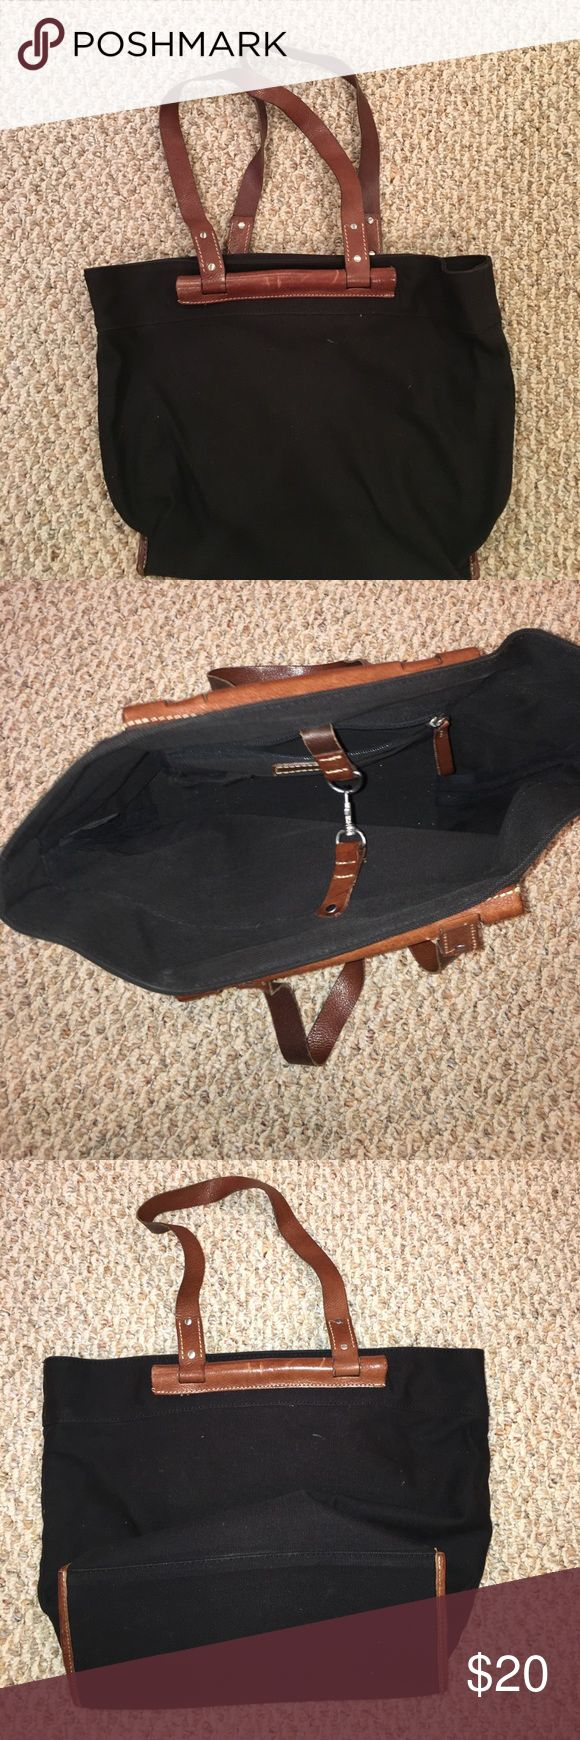 Love this tote bag used it as a work bag. This is a awesome work bag because it is sturdy and roomy. The straps are brown leather. Banana Republic Bags Totes